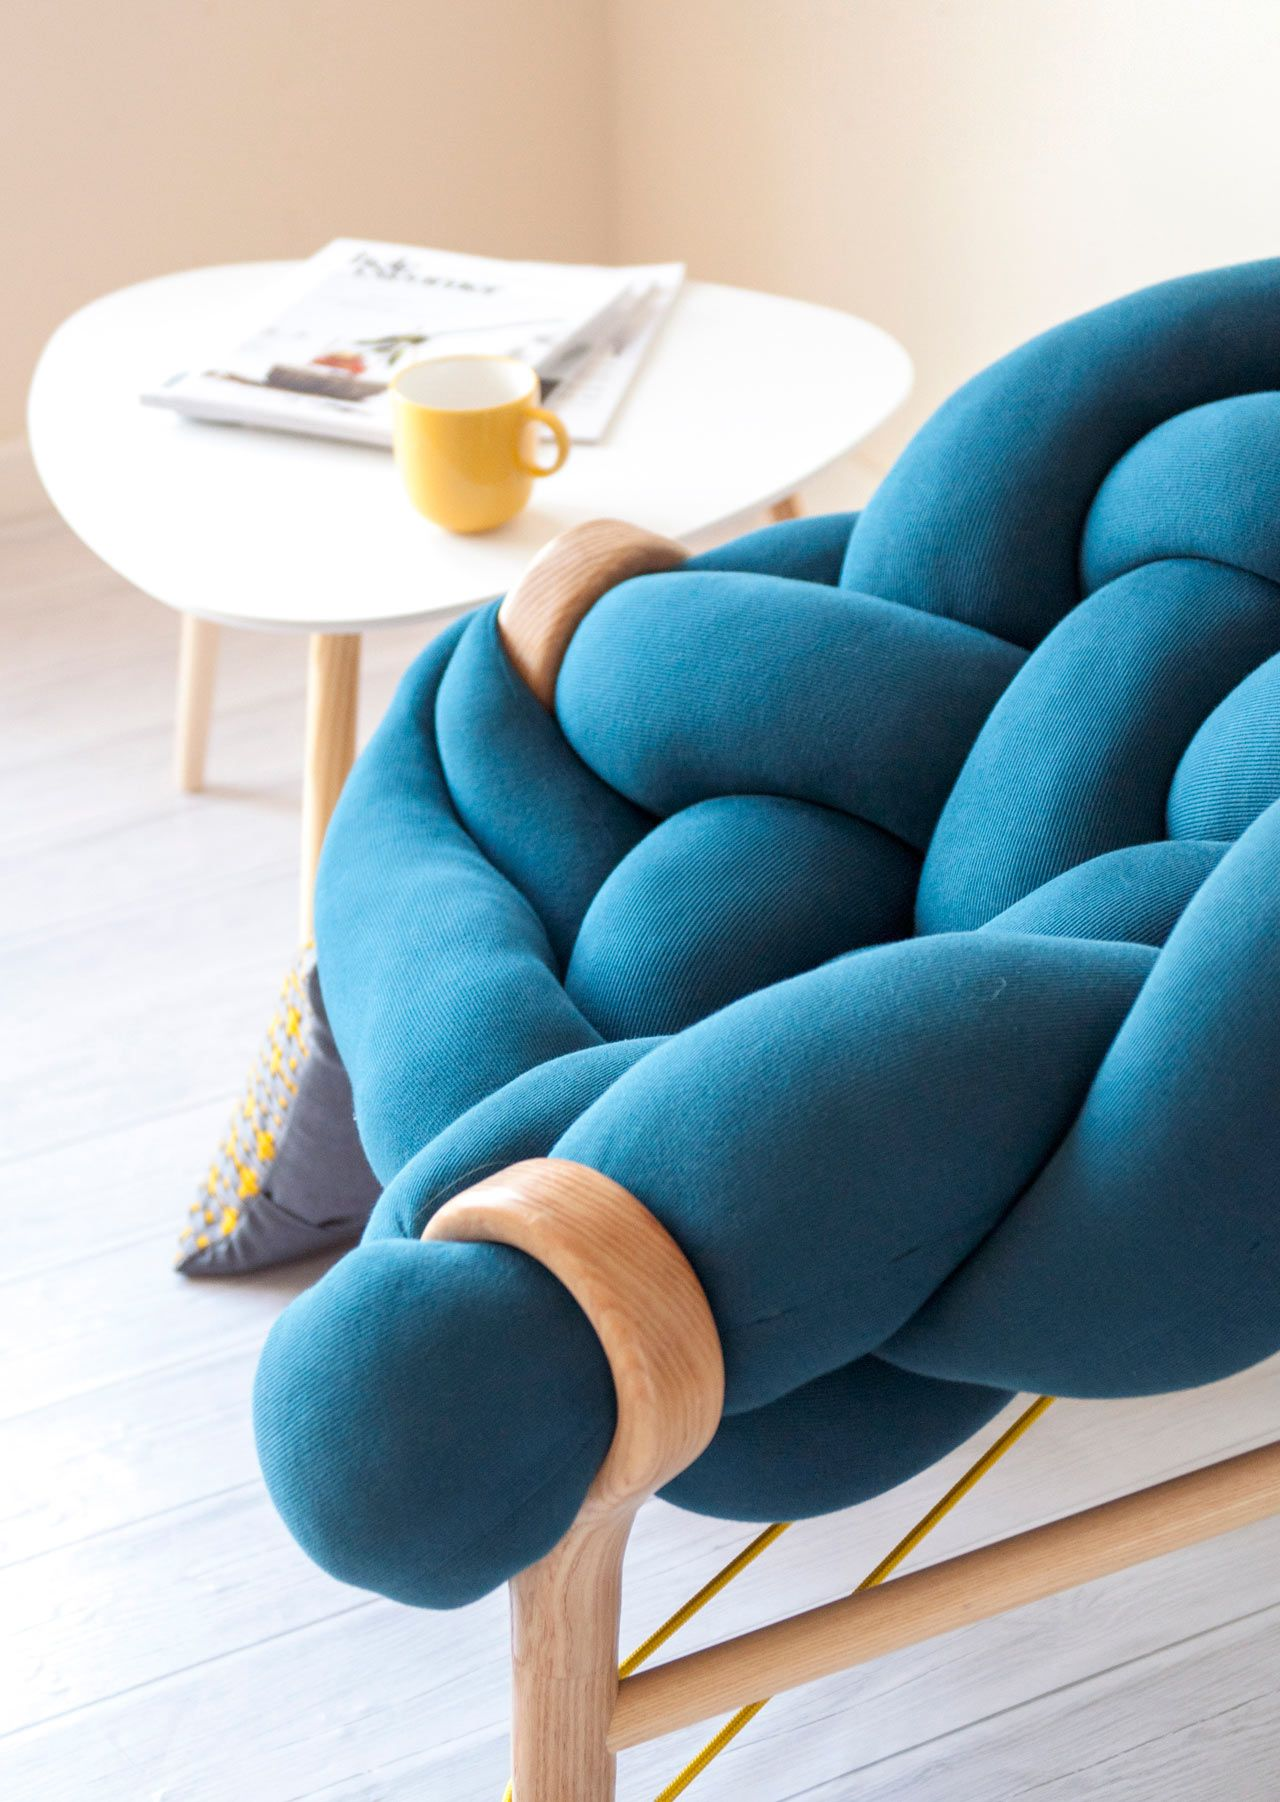 veegadesign: A Playful Collection of Furniture and